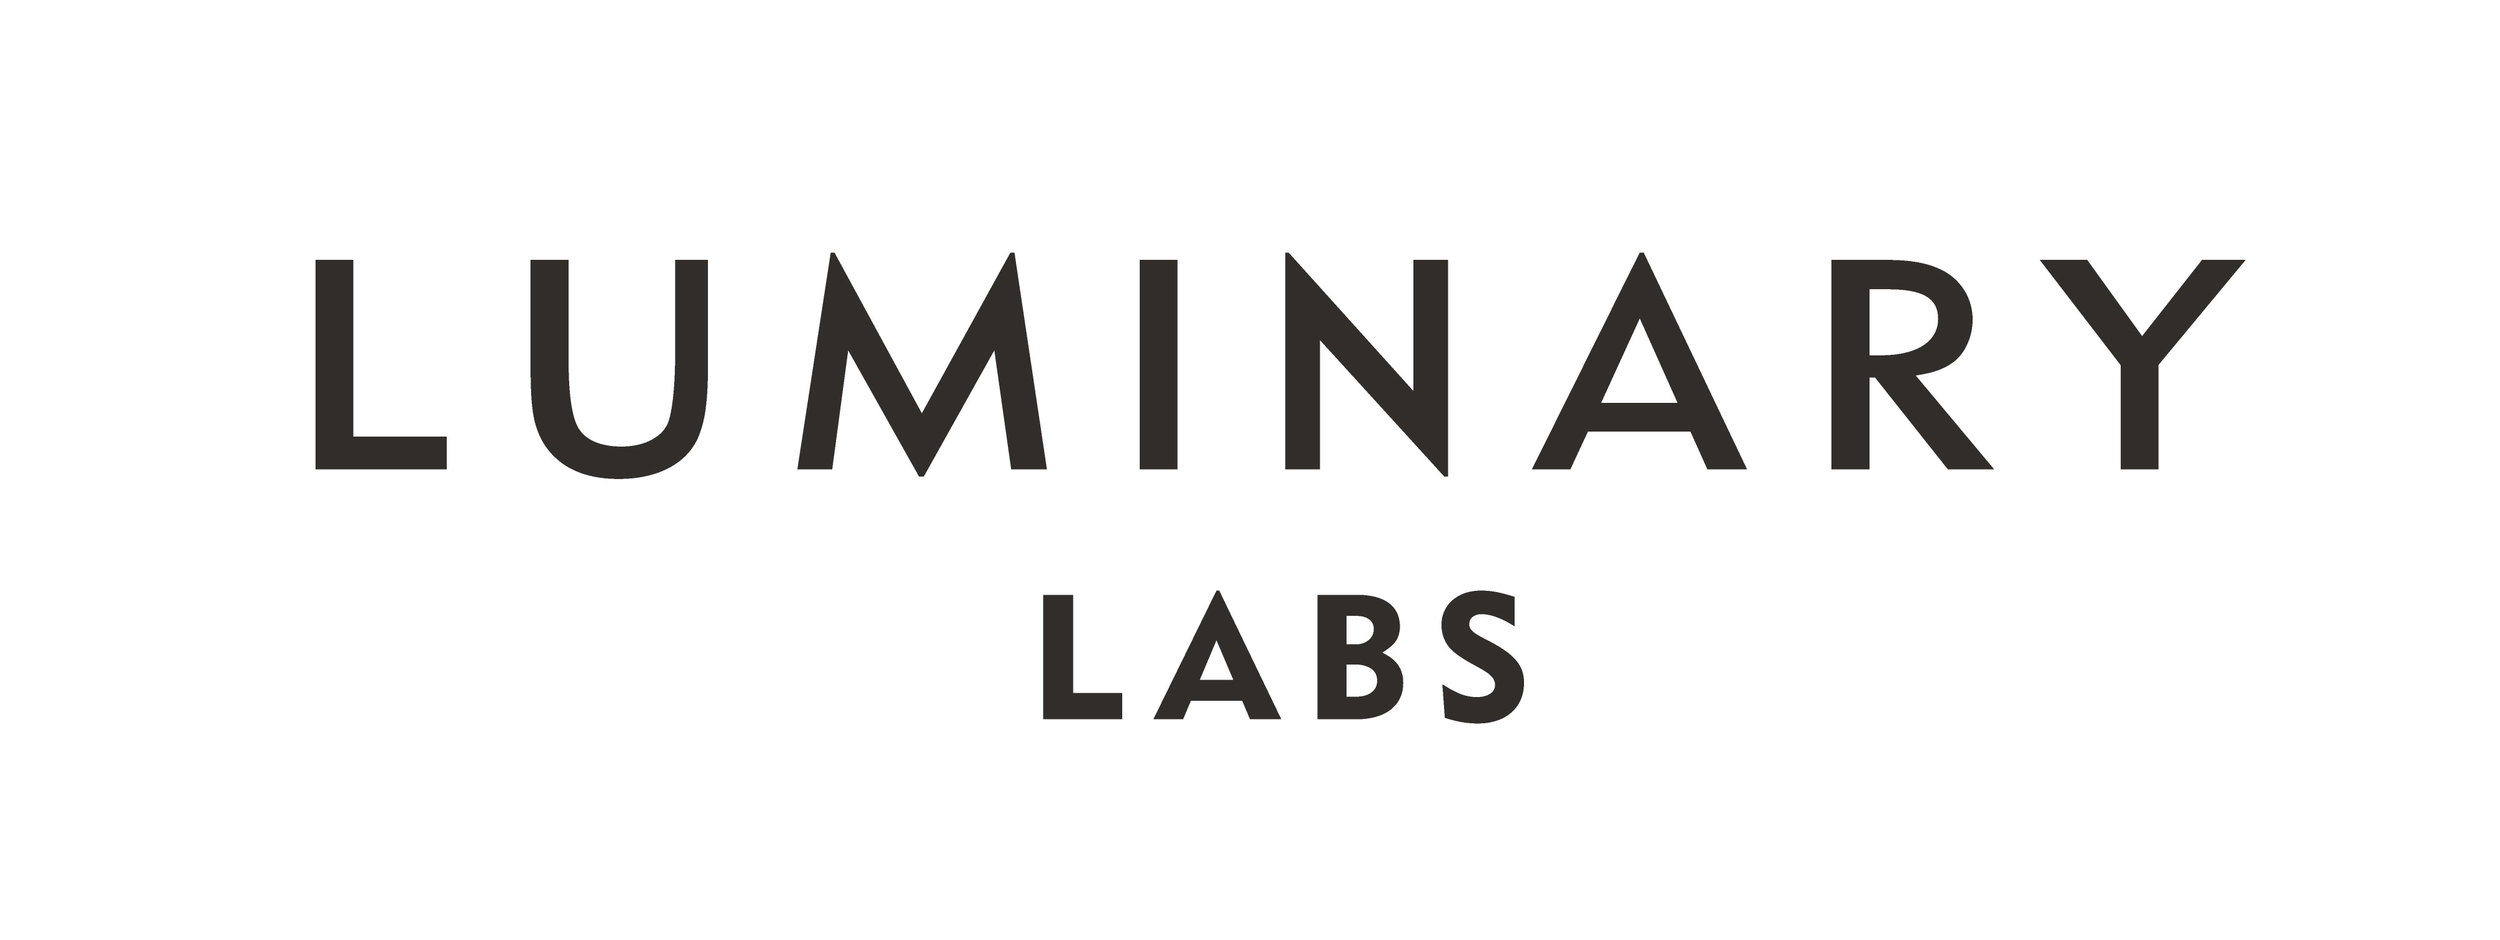 LuminaryLabs_logo.jpg